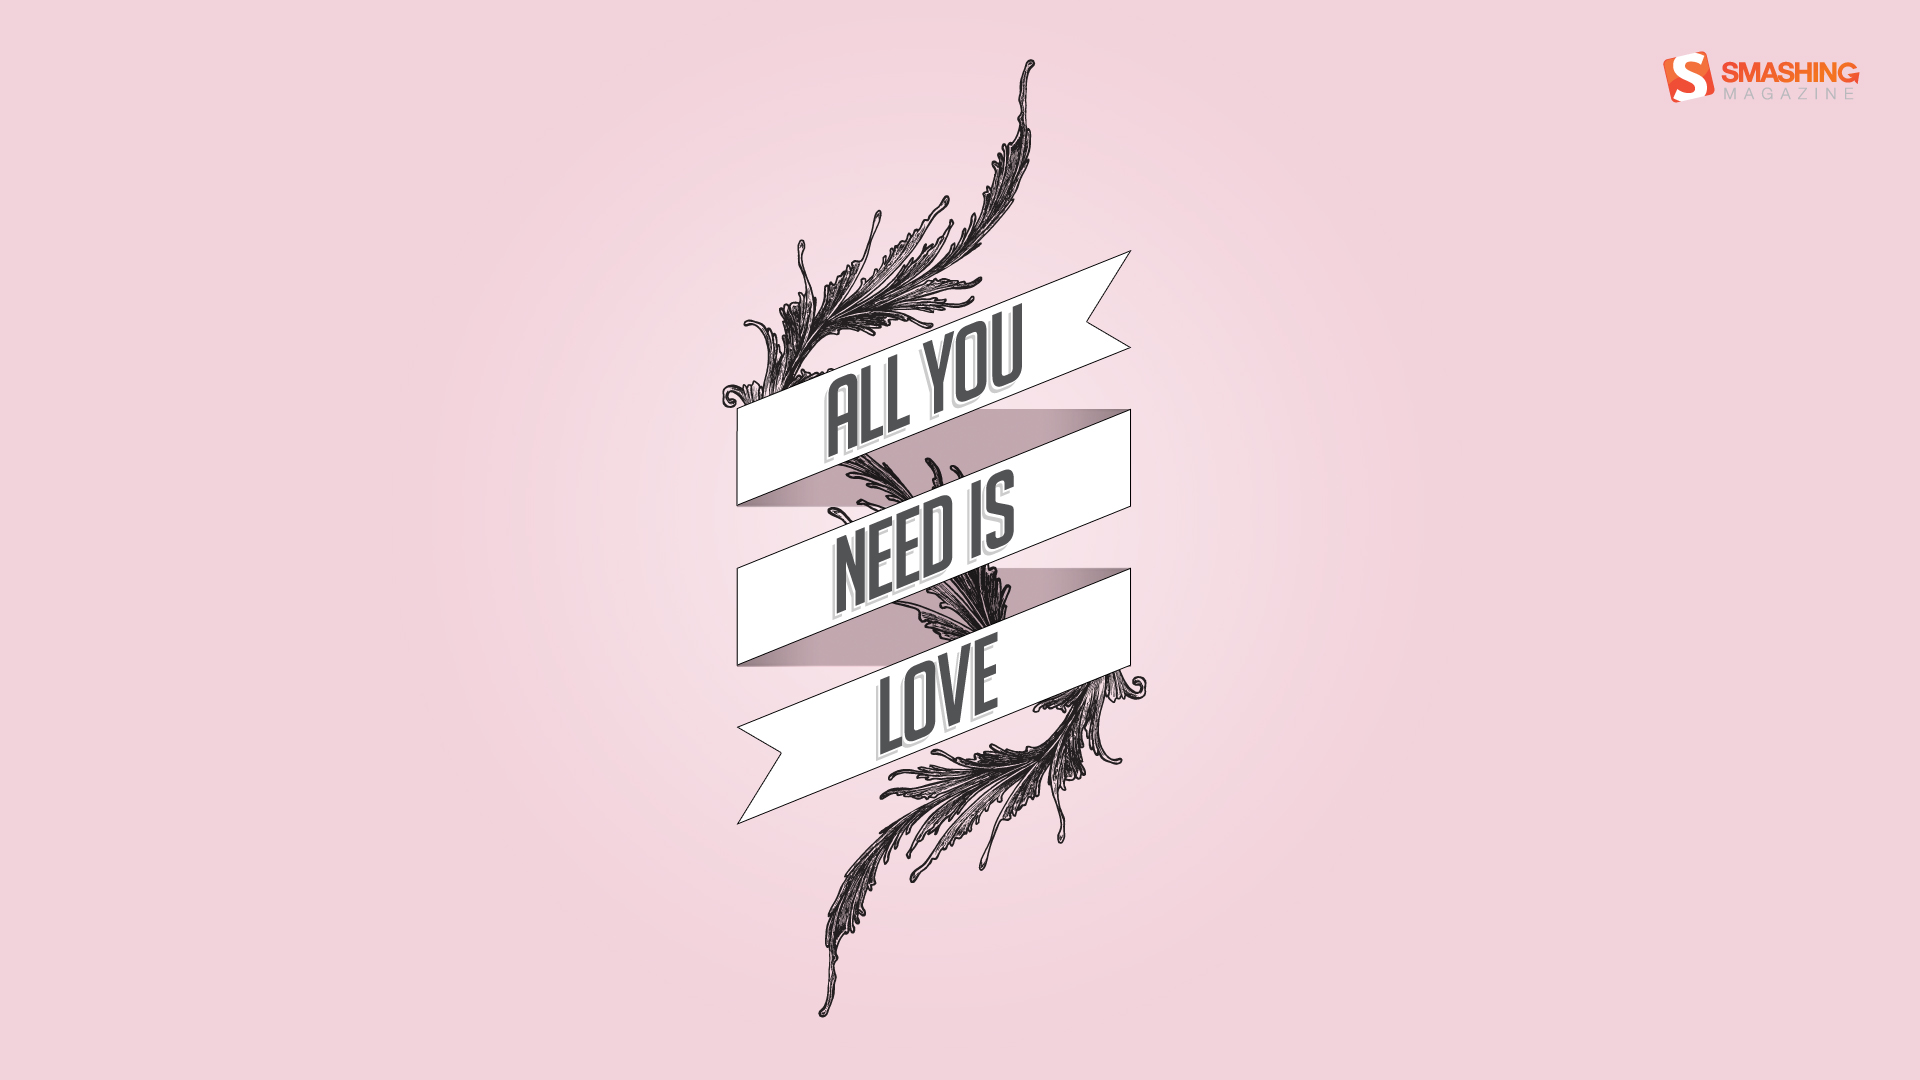 Hd wallpaper you need - All You Need Is Love Wallpapers And Stock Photos